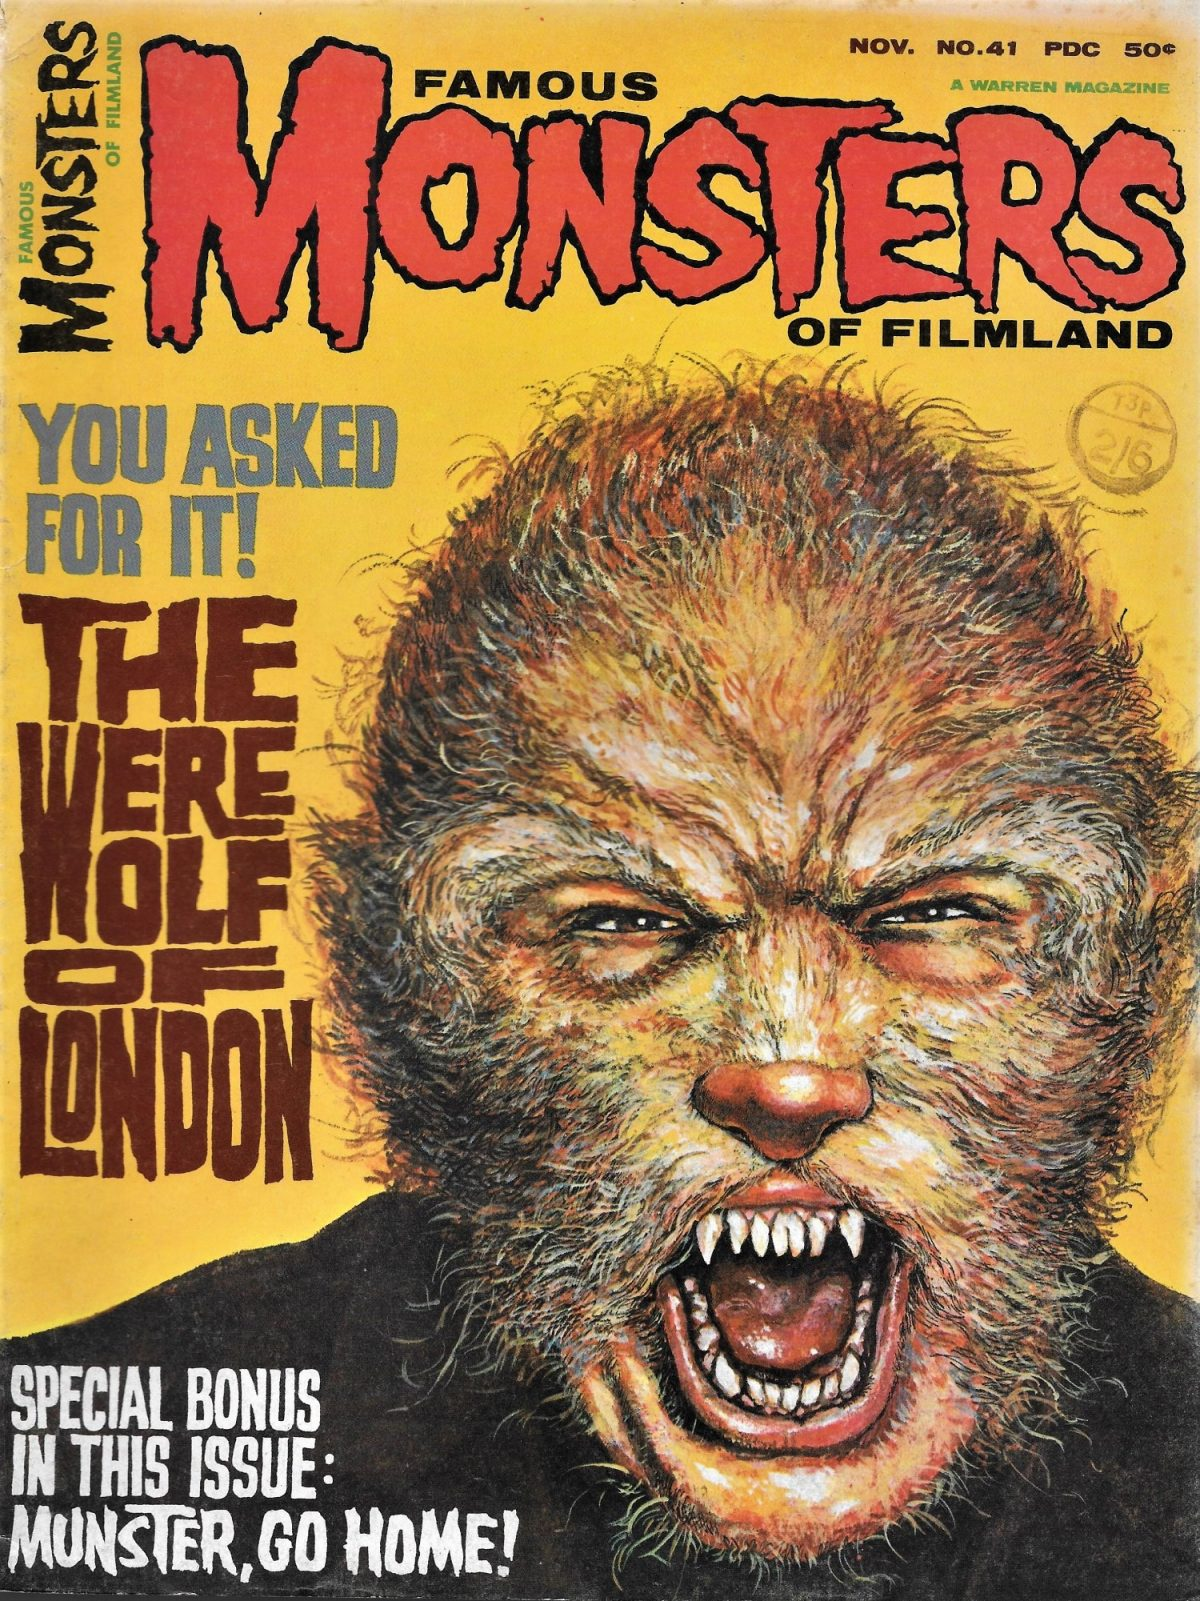 Werewwolf of London, Monsters, magazine, Henry Hull, film